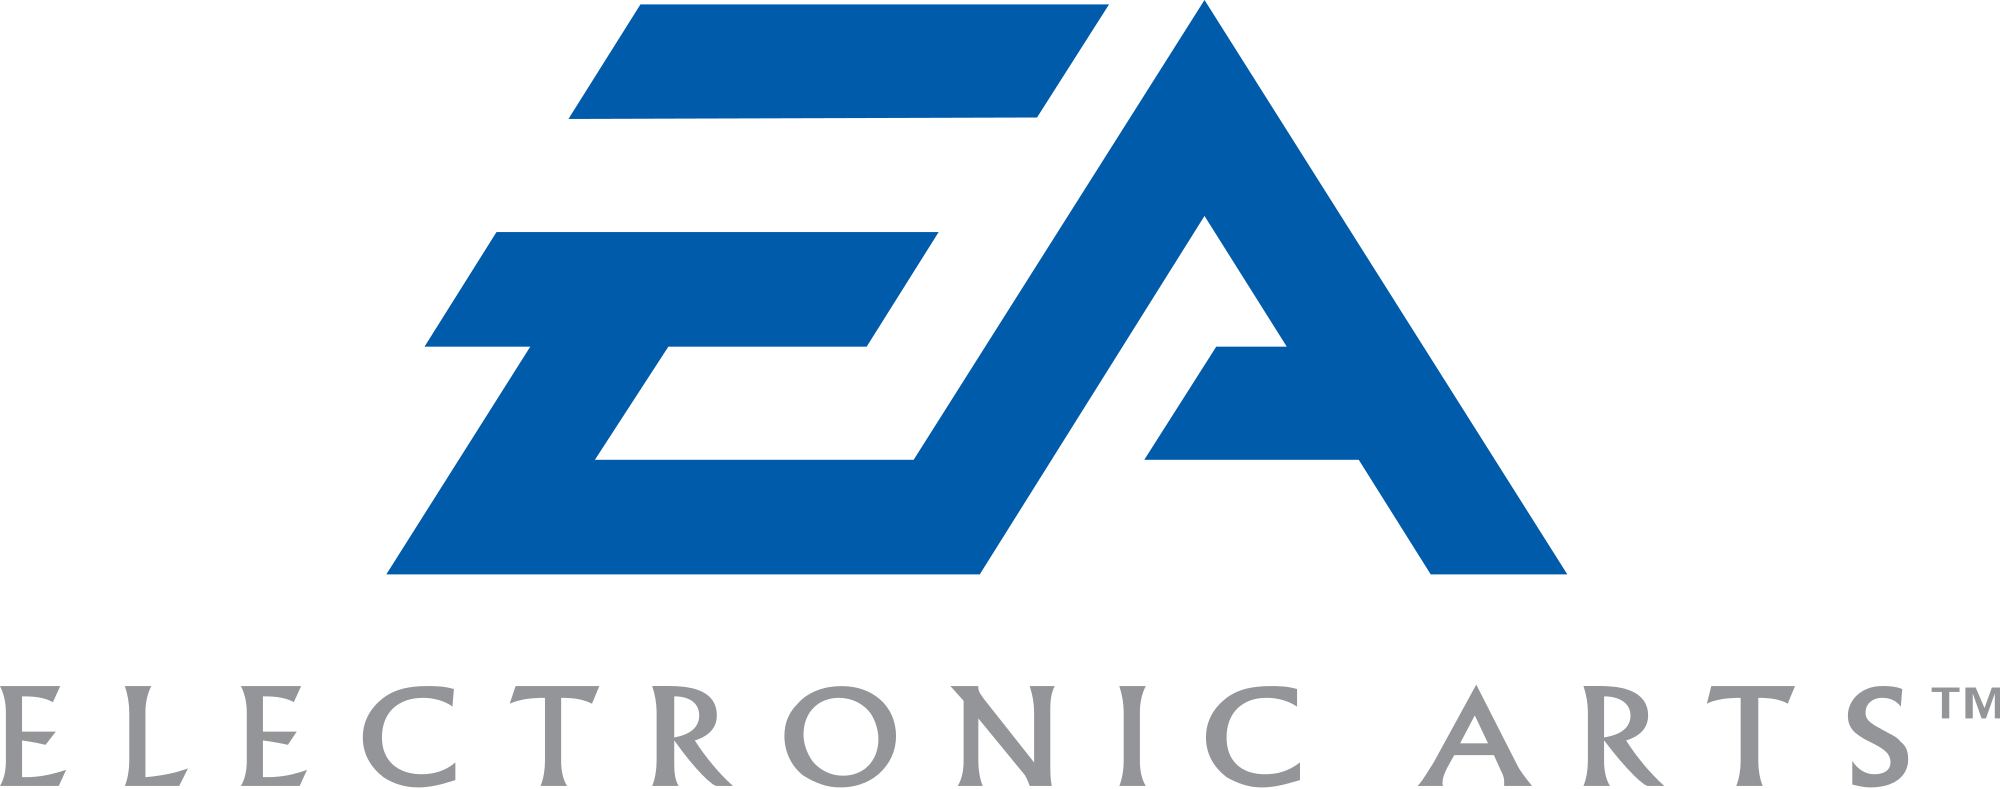 Ea logo png. File electronic arts svg